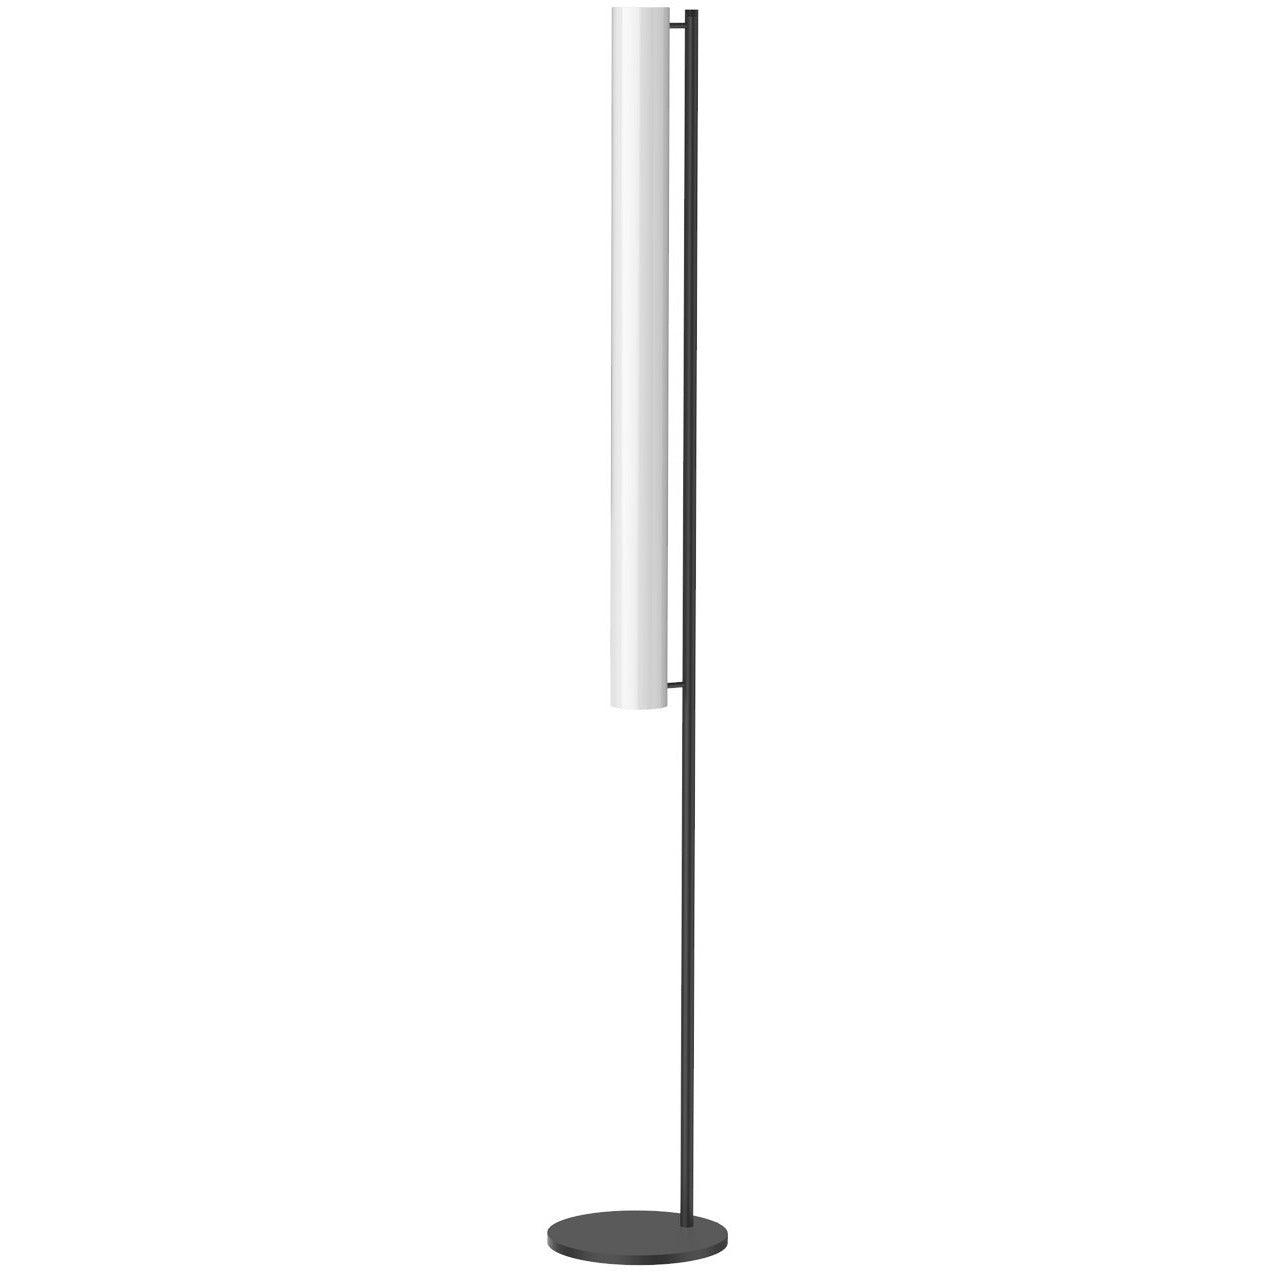 Kuzco Lighting - FL70155-BK - LED Floor Lamp - Gramercy - Black